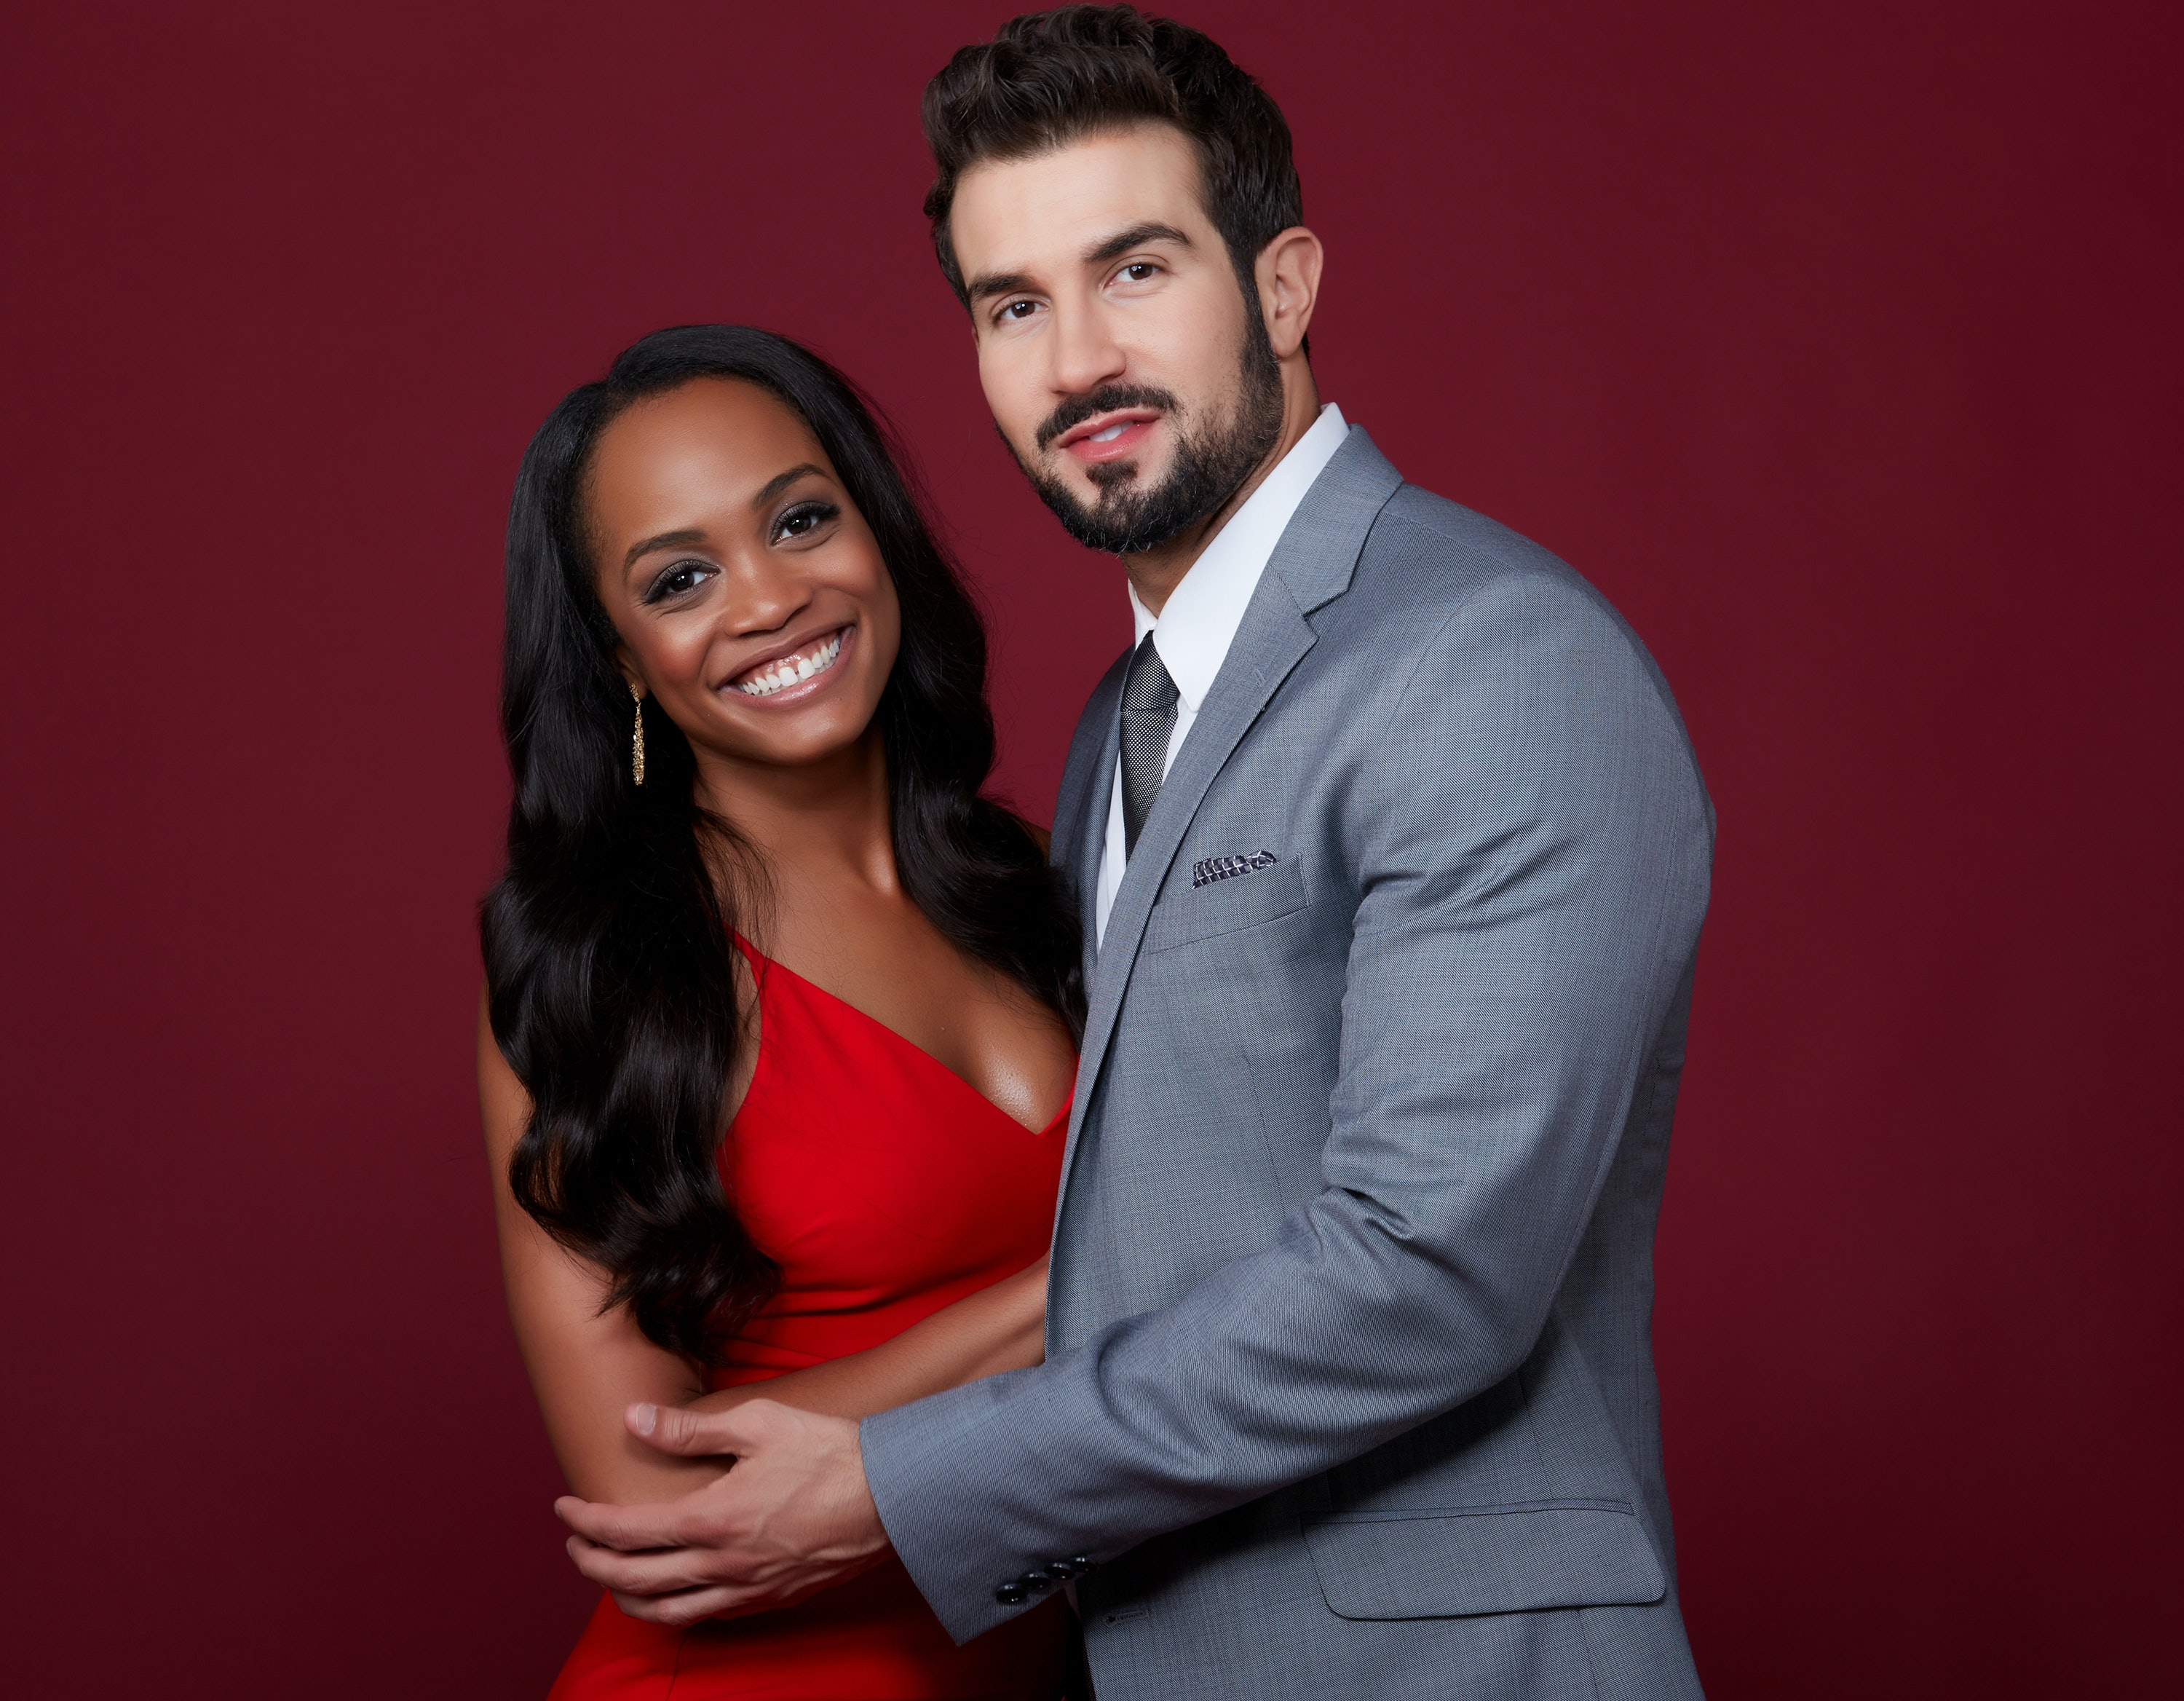 When Will Rachel Bryan Have Kids The Bachelorette Couple Reveals Their Plans